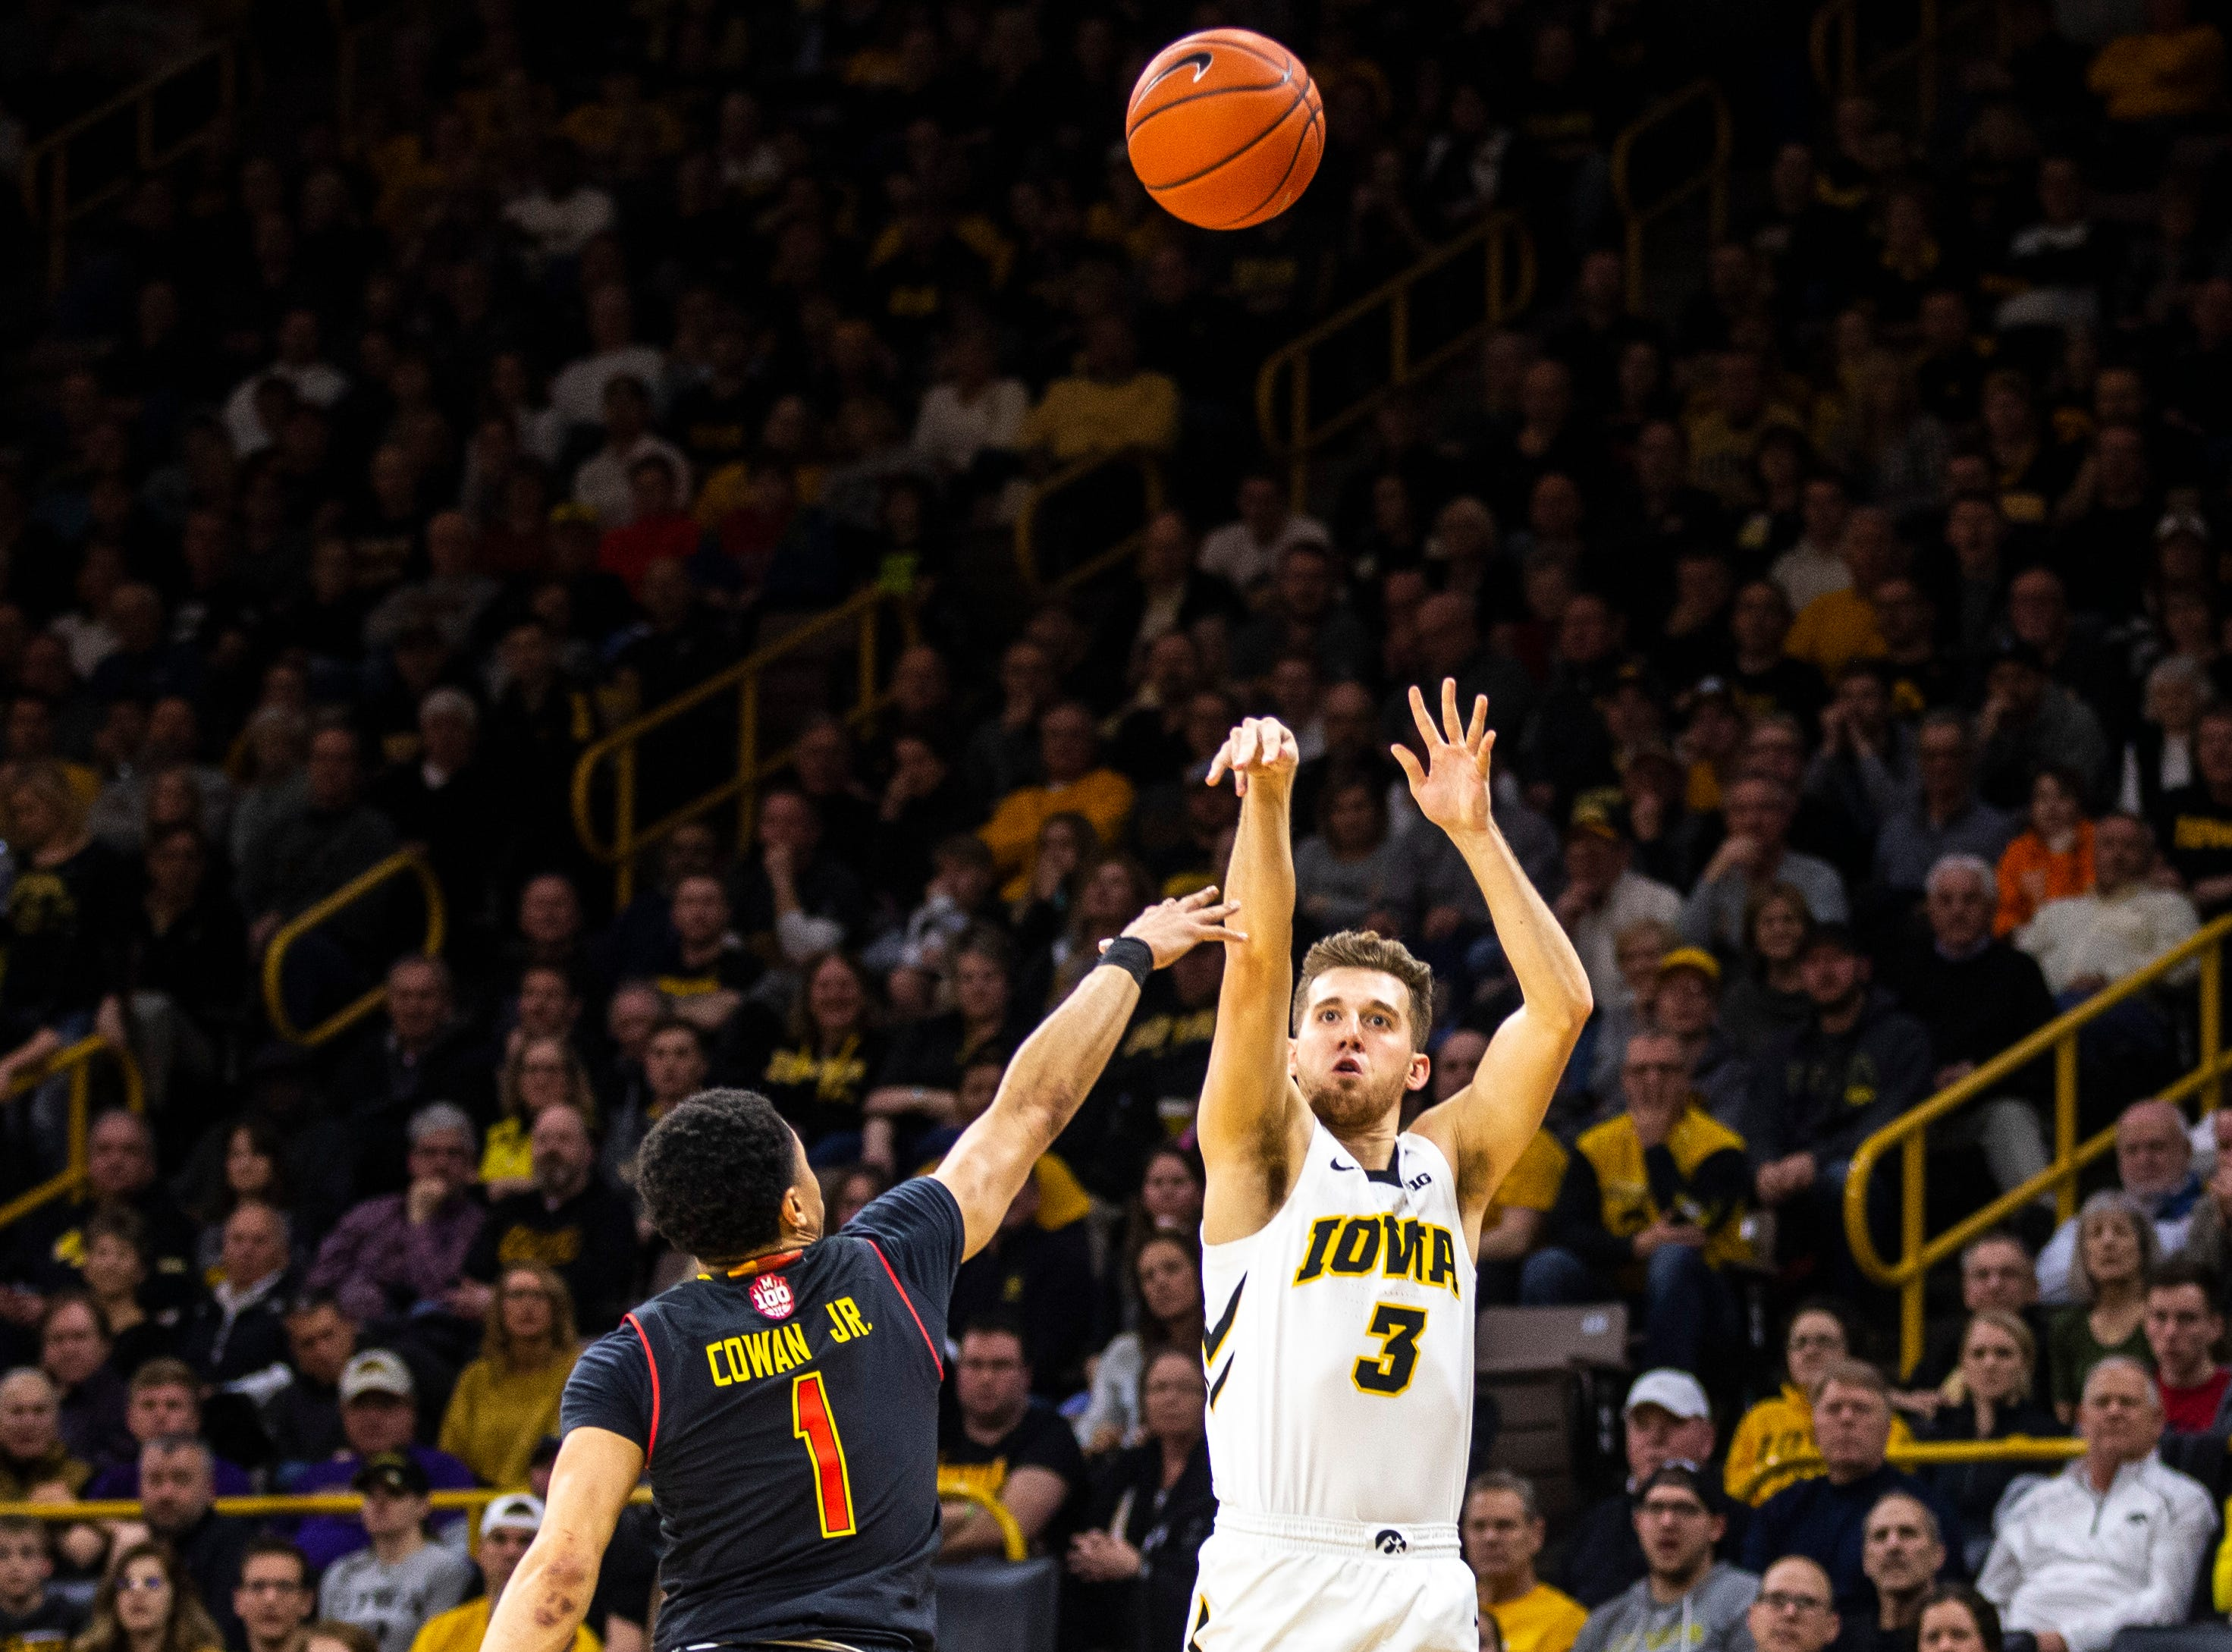 Iowa guard Jordan Bohannon (3) shoots a 3-point basket during a NCAA Big Ten Conference men's basketball game on Tuesday, Feb. 19, 2019 at Carver-Hawkeye Arena in Iowa City, Iowa.